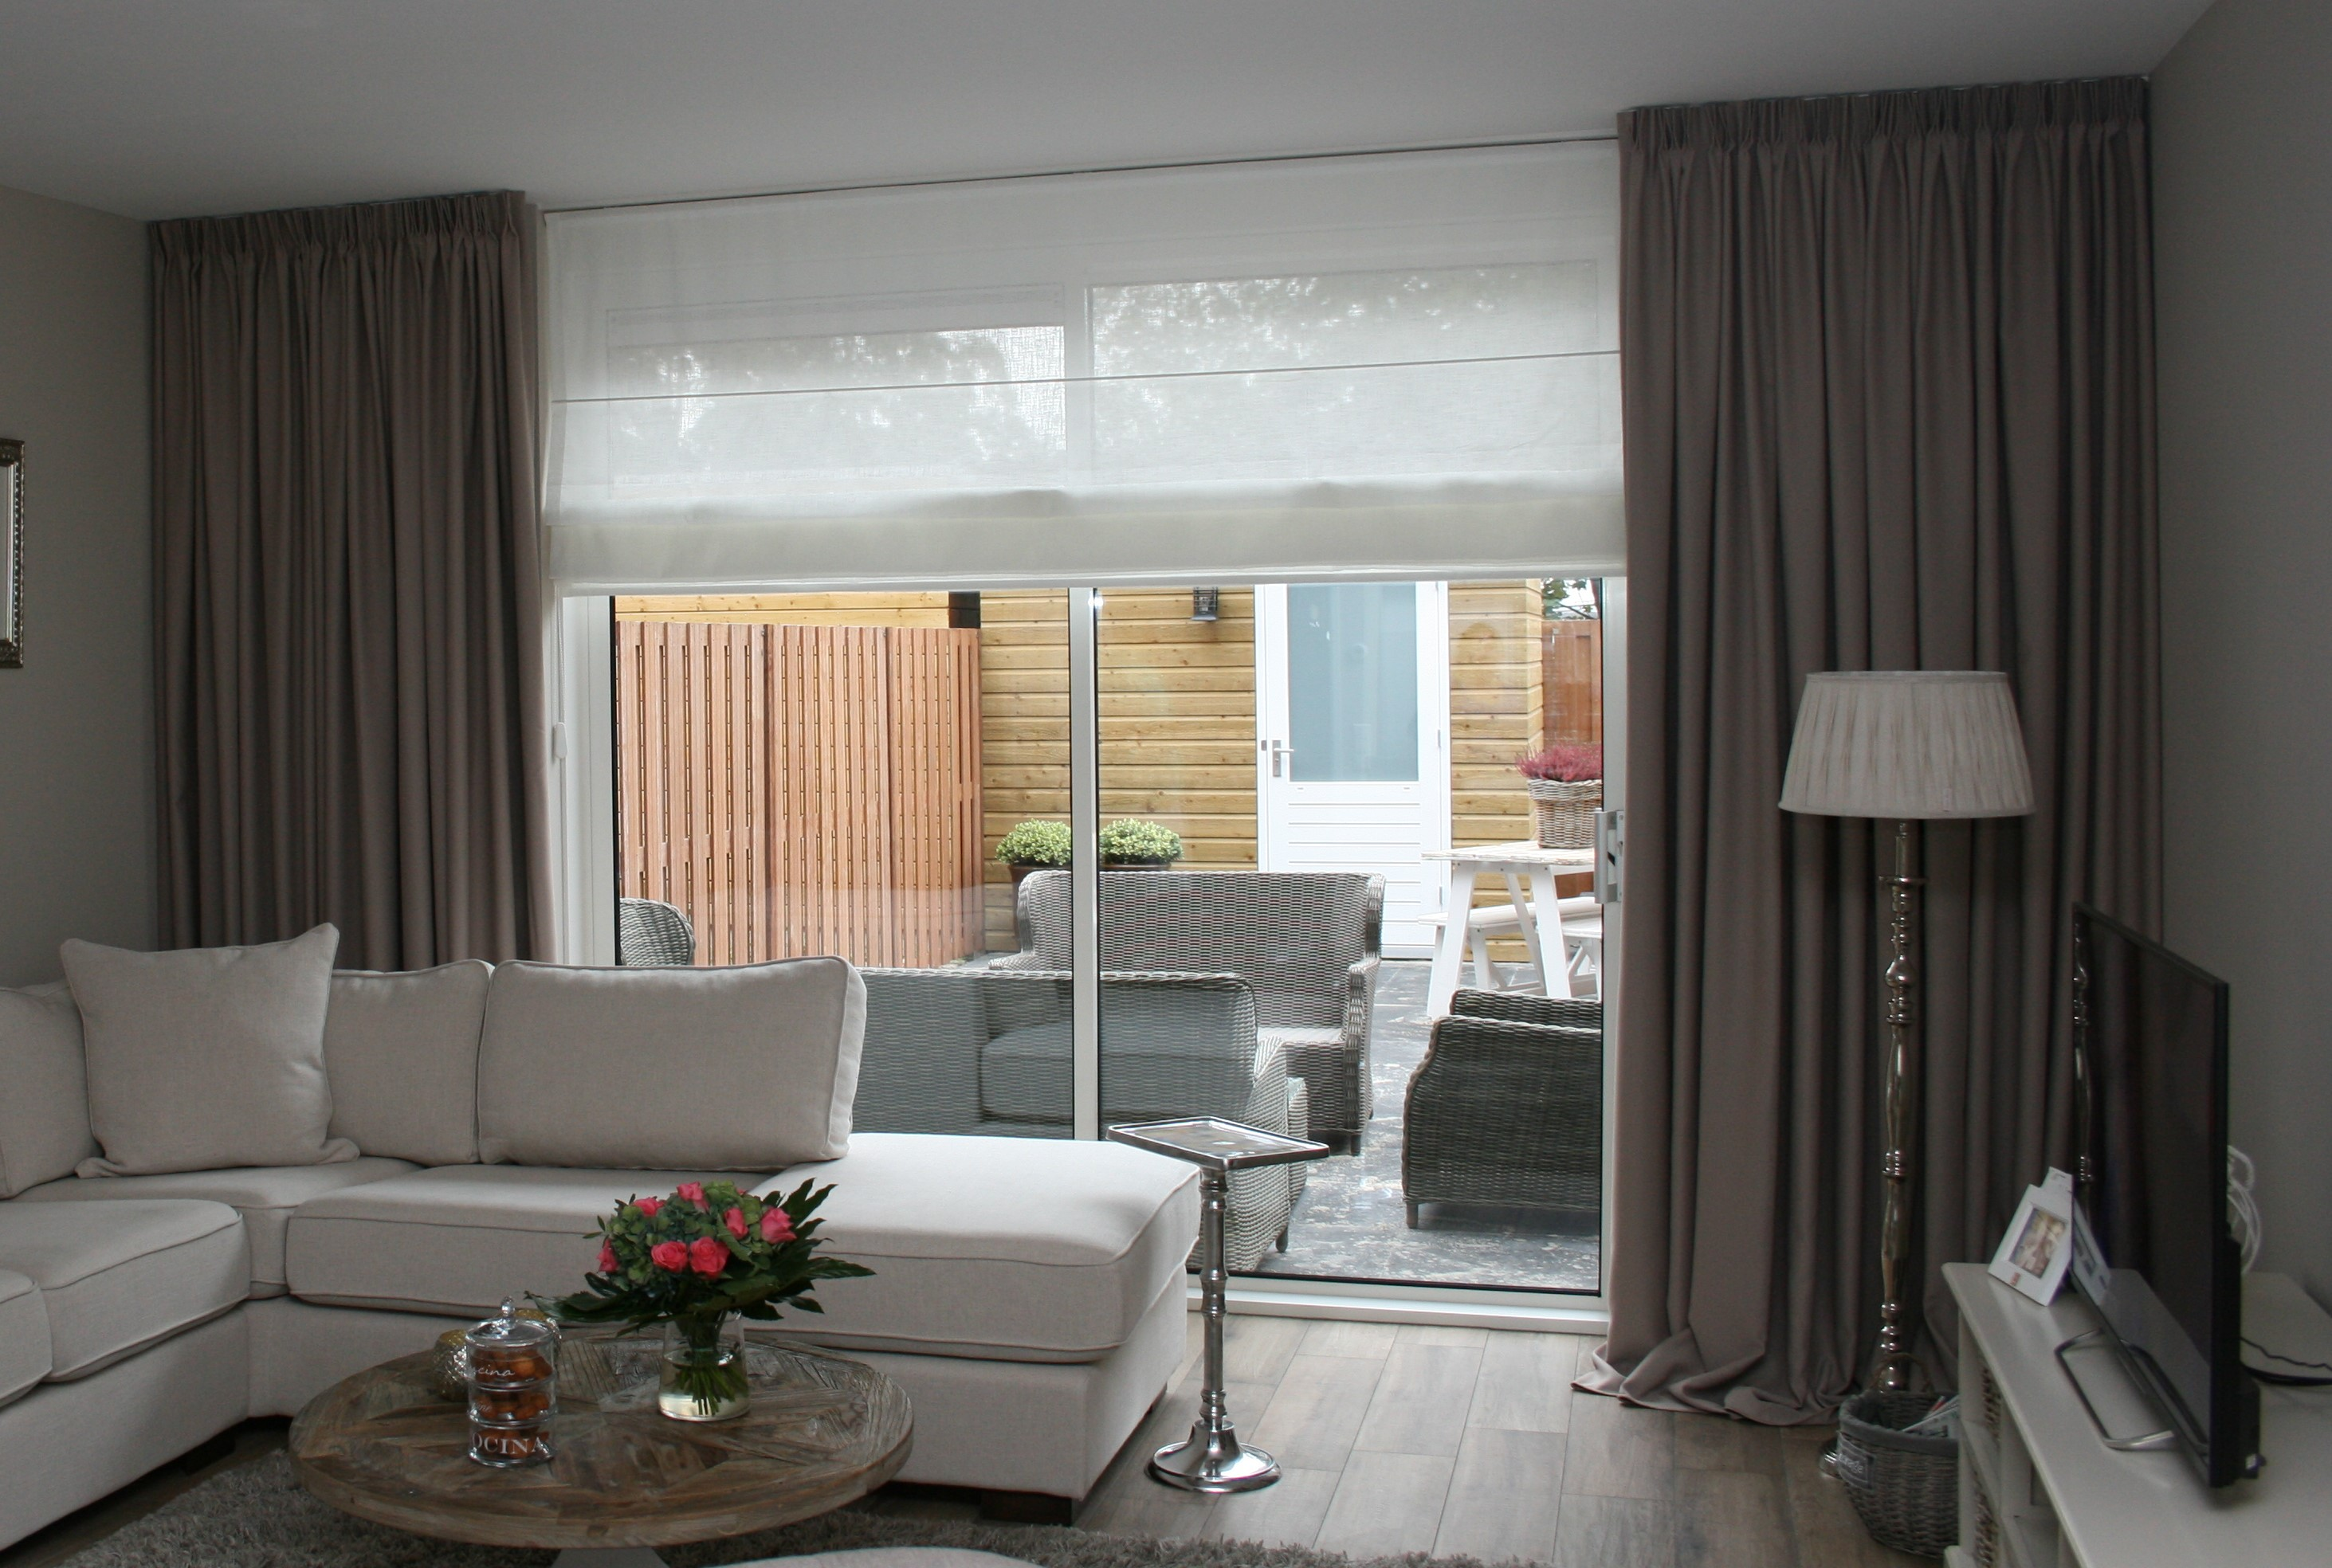 https://www.wesleysdeco.nl/wp-content/gallery/stoffen/IMG_7601-2.jpg